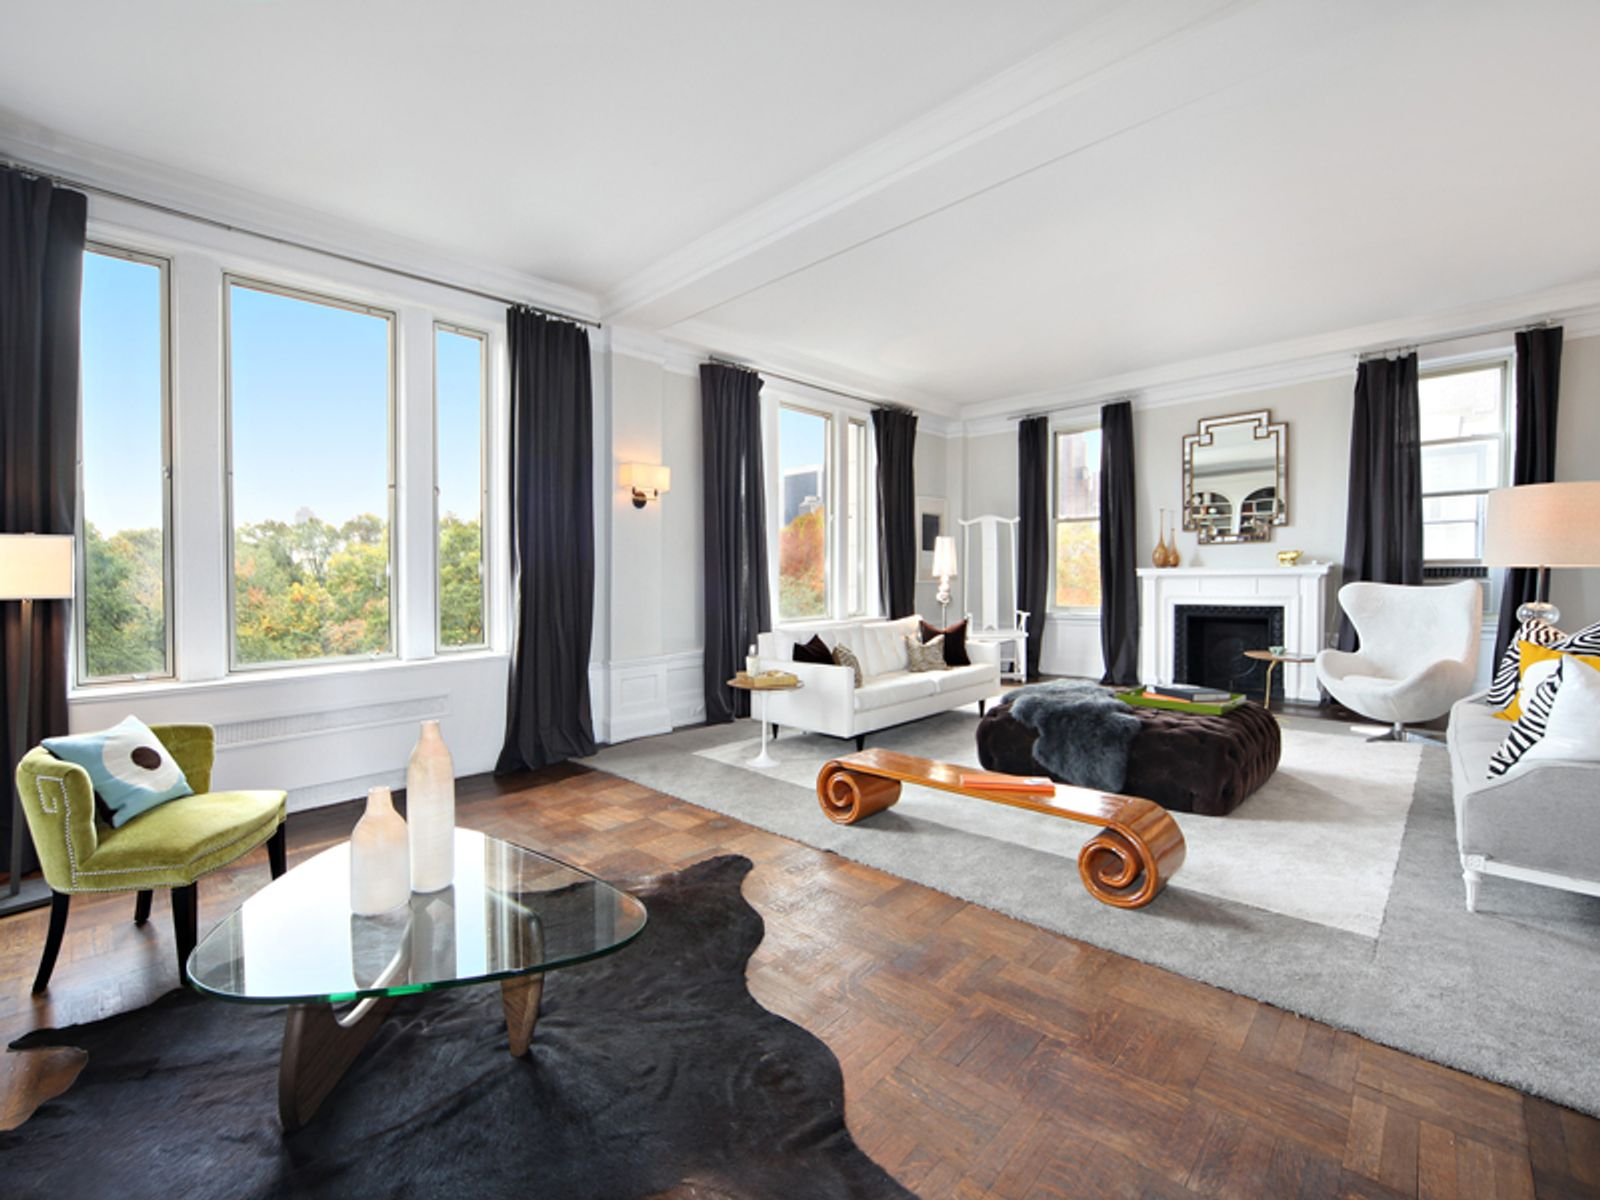 88 Central Park West, New York NY Cooperative - New York City Real Estate